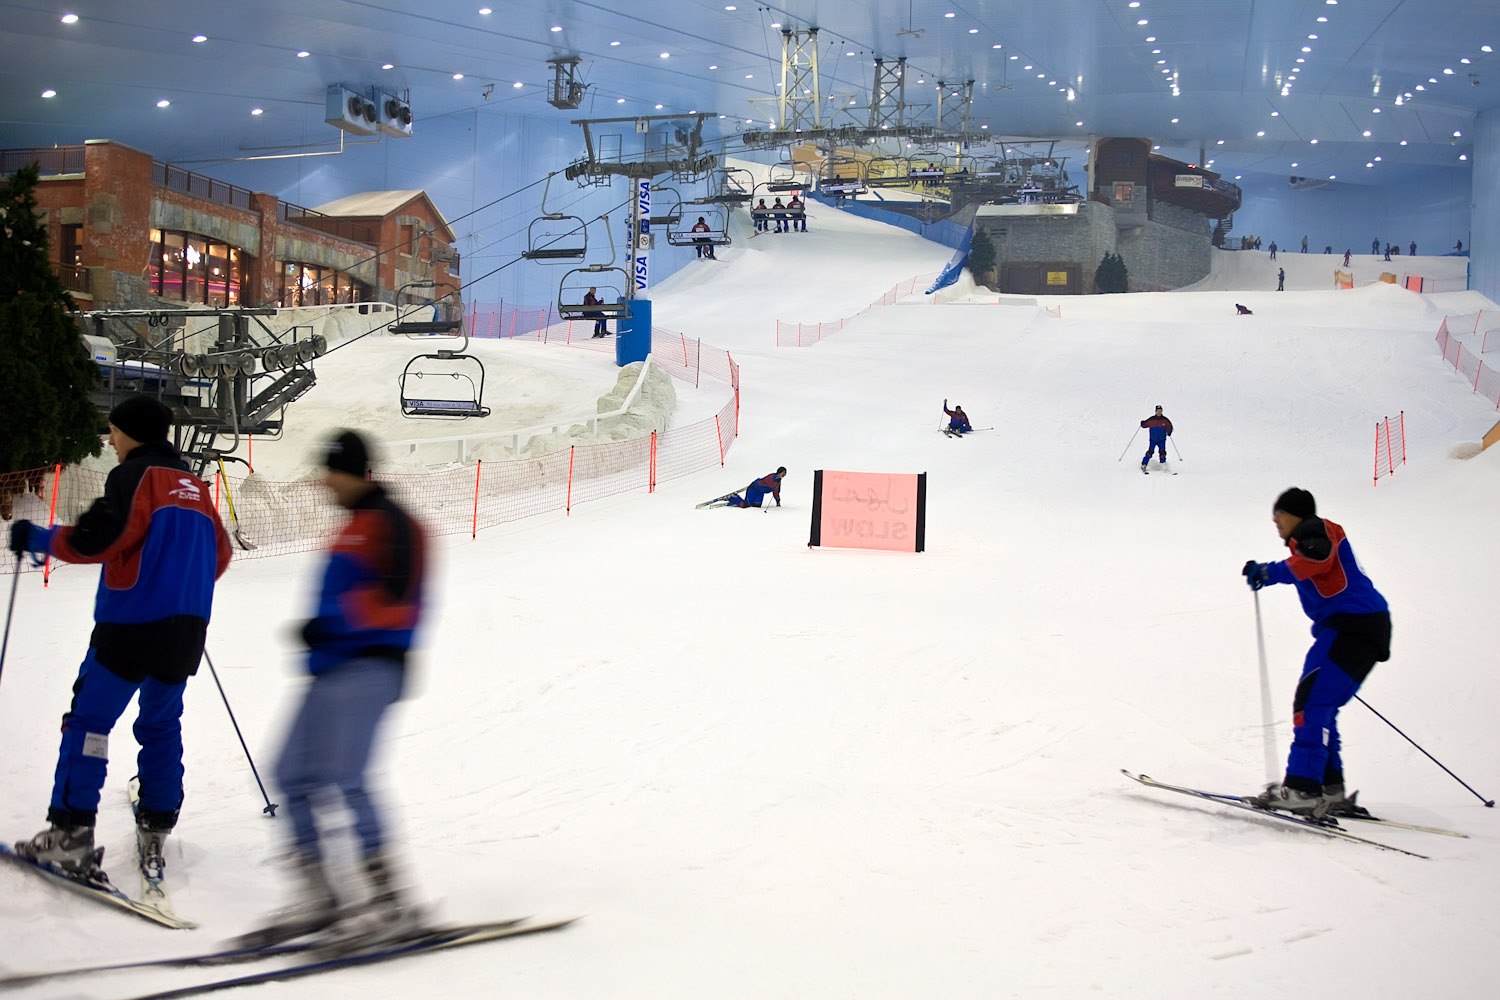 Dubai_Skiing_Mall_13d